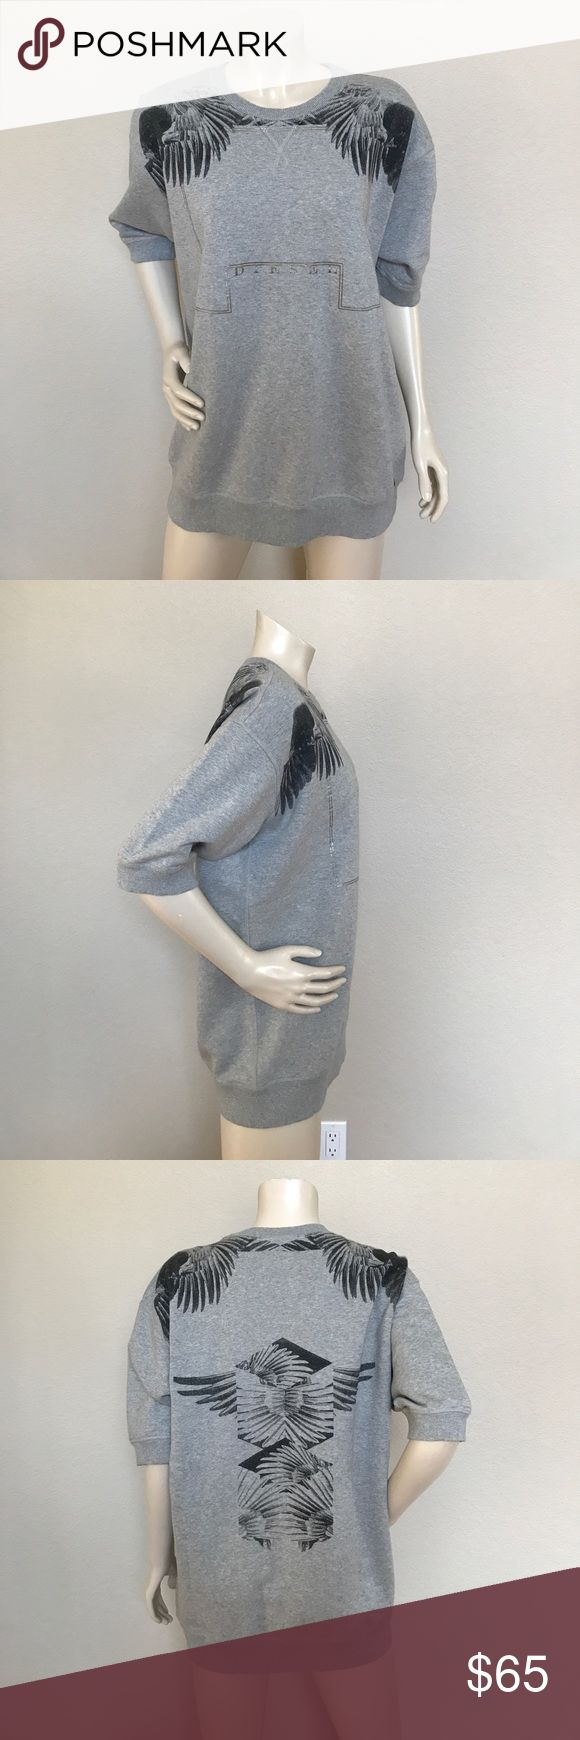 Diesel top New with tags size Large could fit a med. retails for 98. Could work for men or women Diesel Tops Sweatshirts & Hoodies